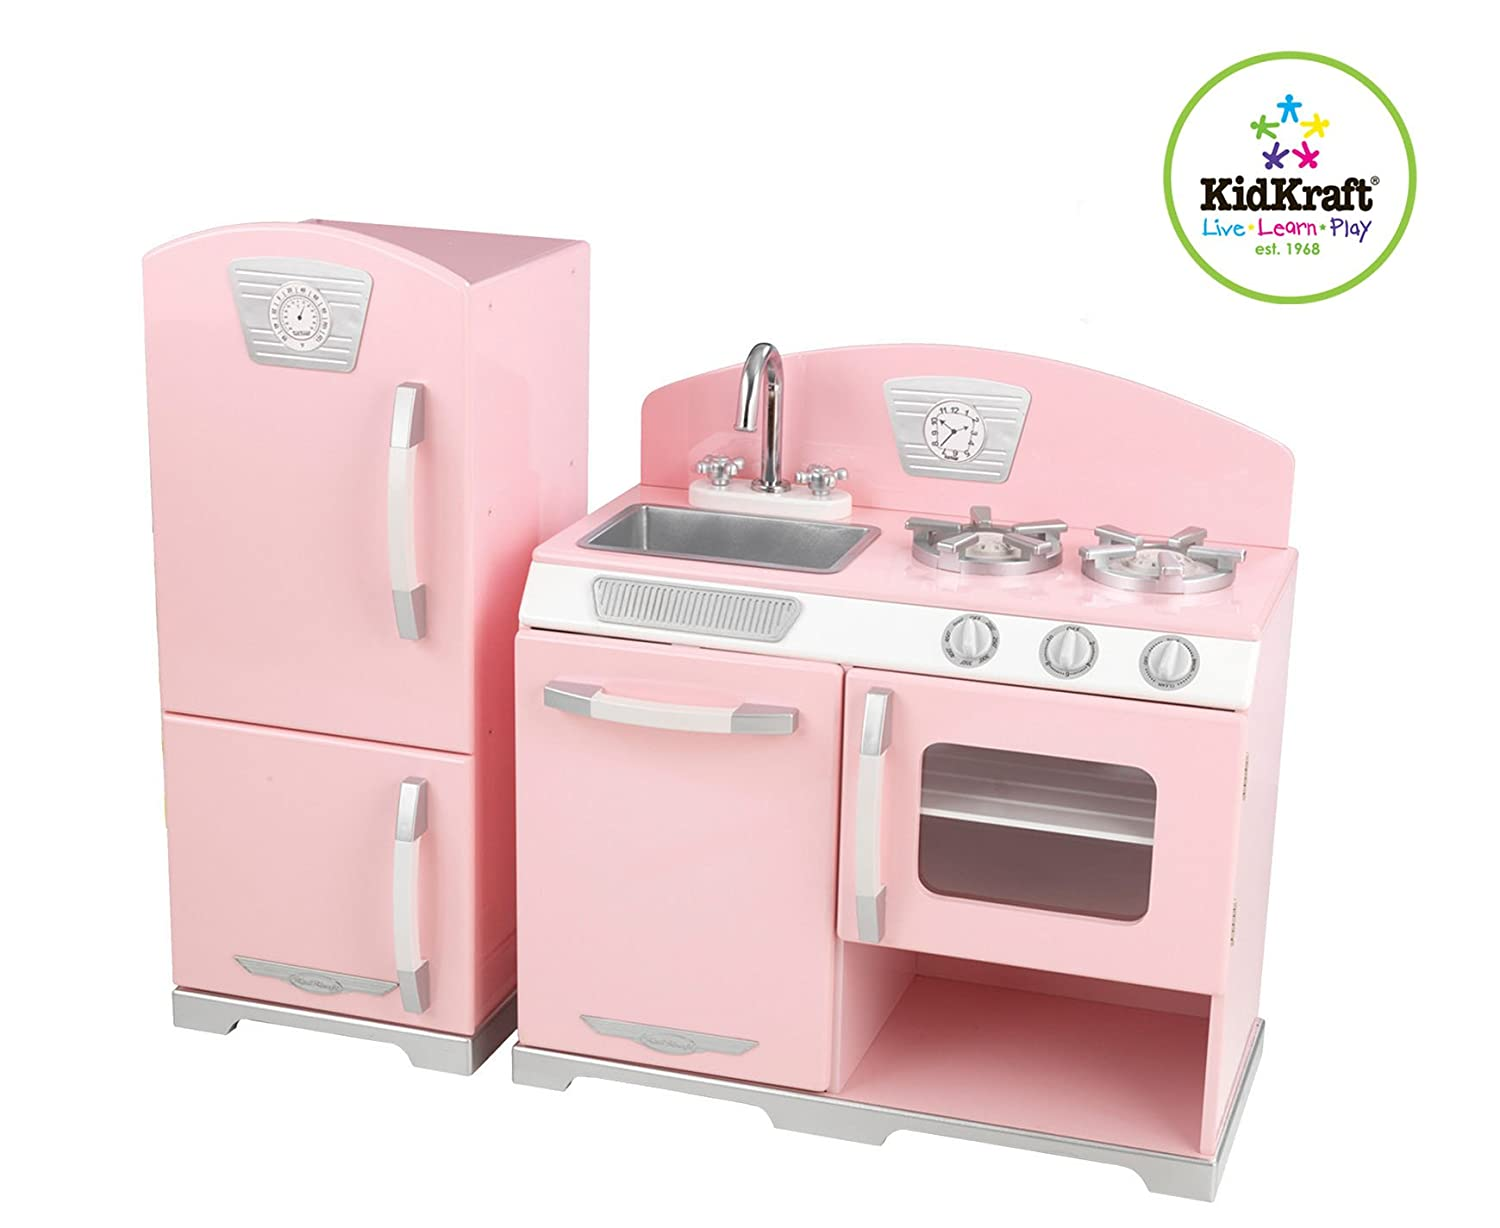 exceptional Kidkraft Pink Retro Kitchen And Refrigerator Play Set Part - 1: Amazon.com: Kidkraft Retro Kitchen and Refrigerator in Pink: Toys u0026 Games